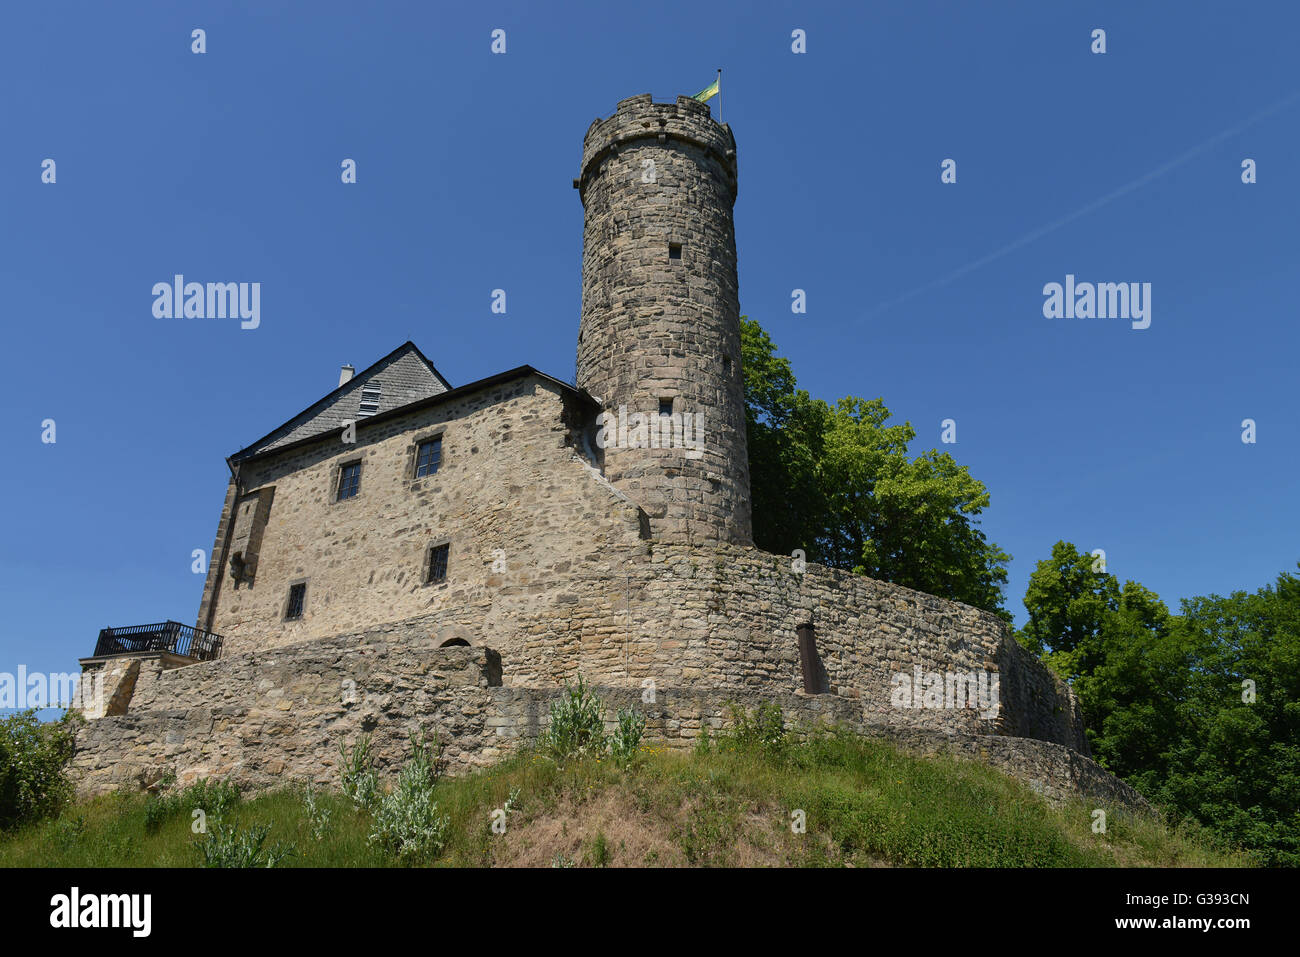 Burg greifenstein bad blankenburg th ringen deutschland for Burg greifenstein bad blankenburg